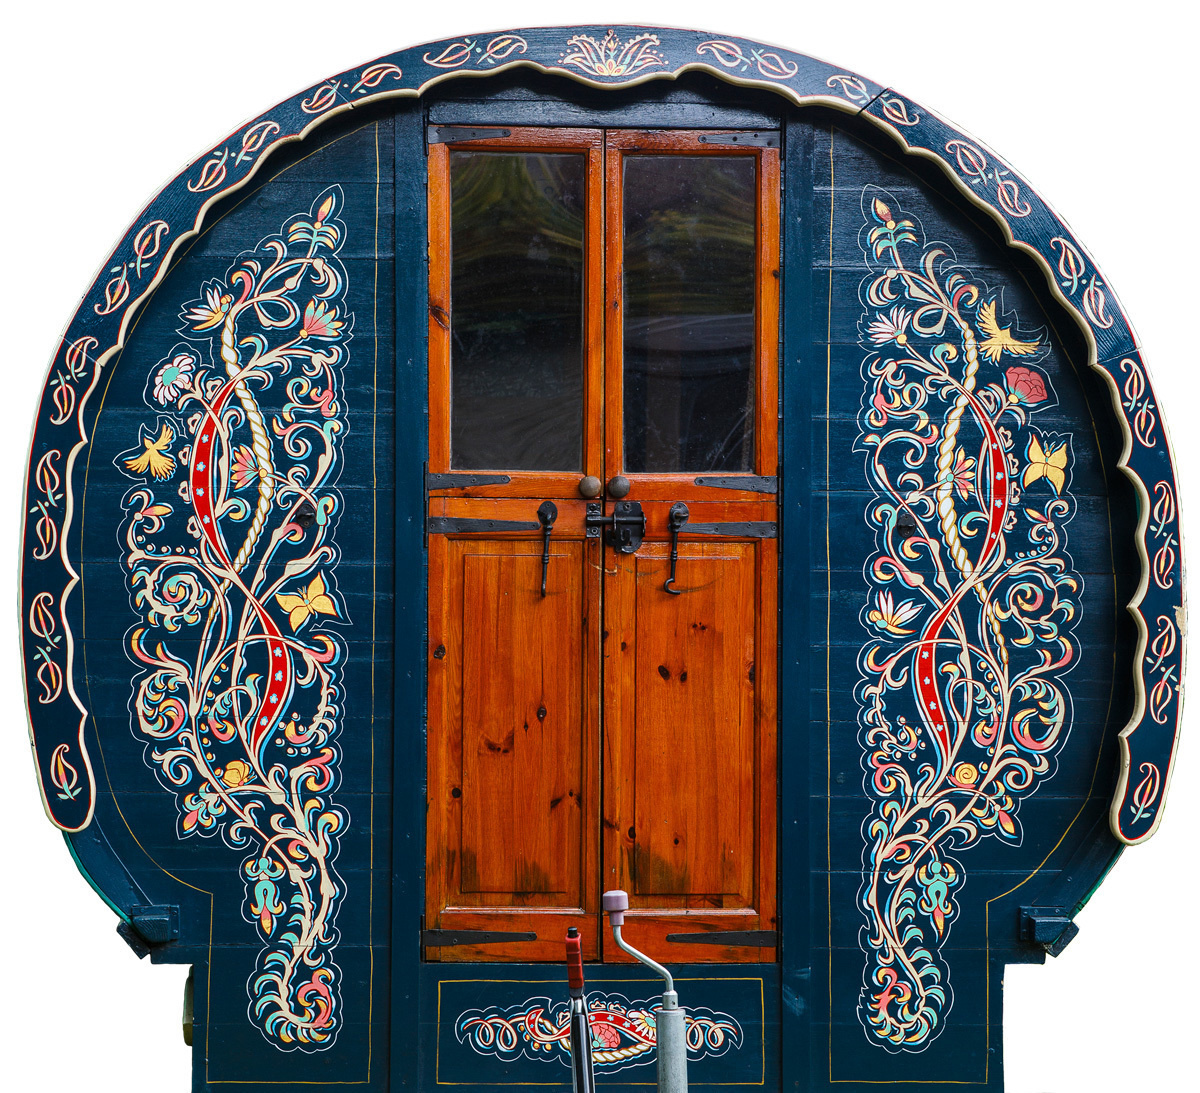 The painting job comes at an extra price, but these designs give it that special something. - These Gypsy Caravans Are All Your Hippy-Dreams Come True, Especially The Inside.